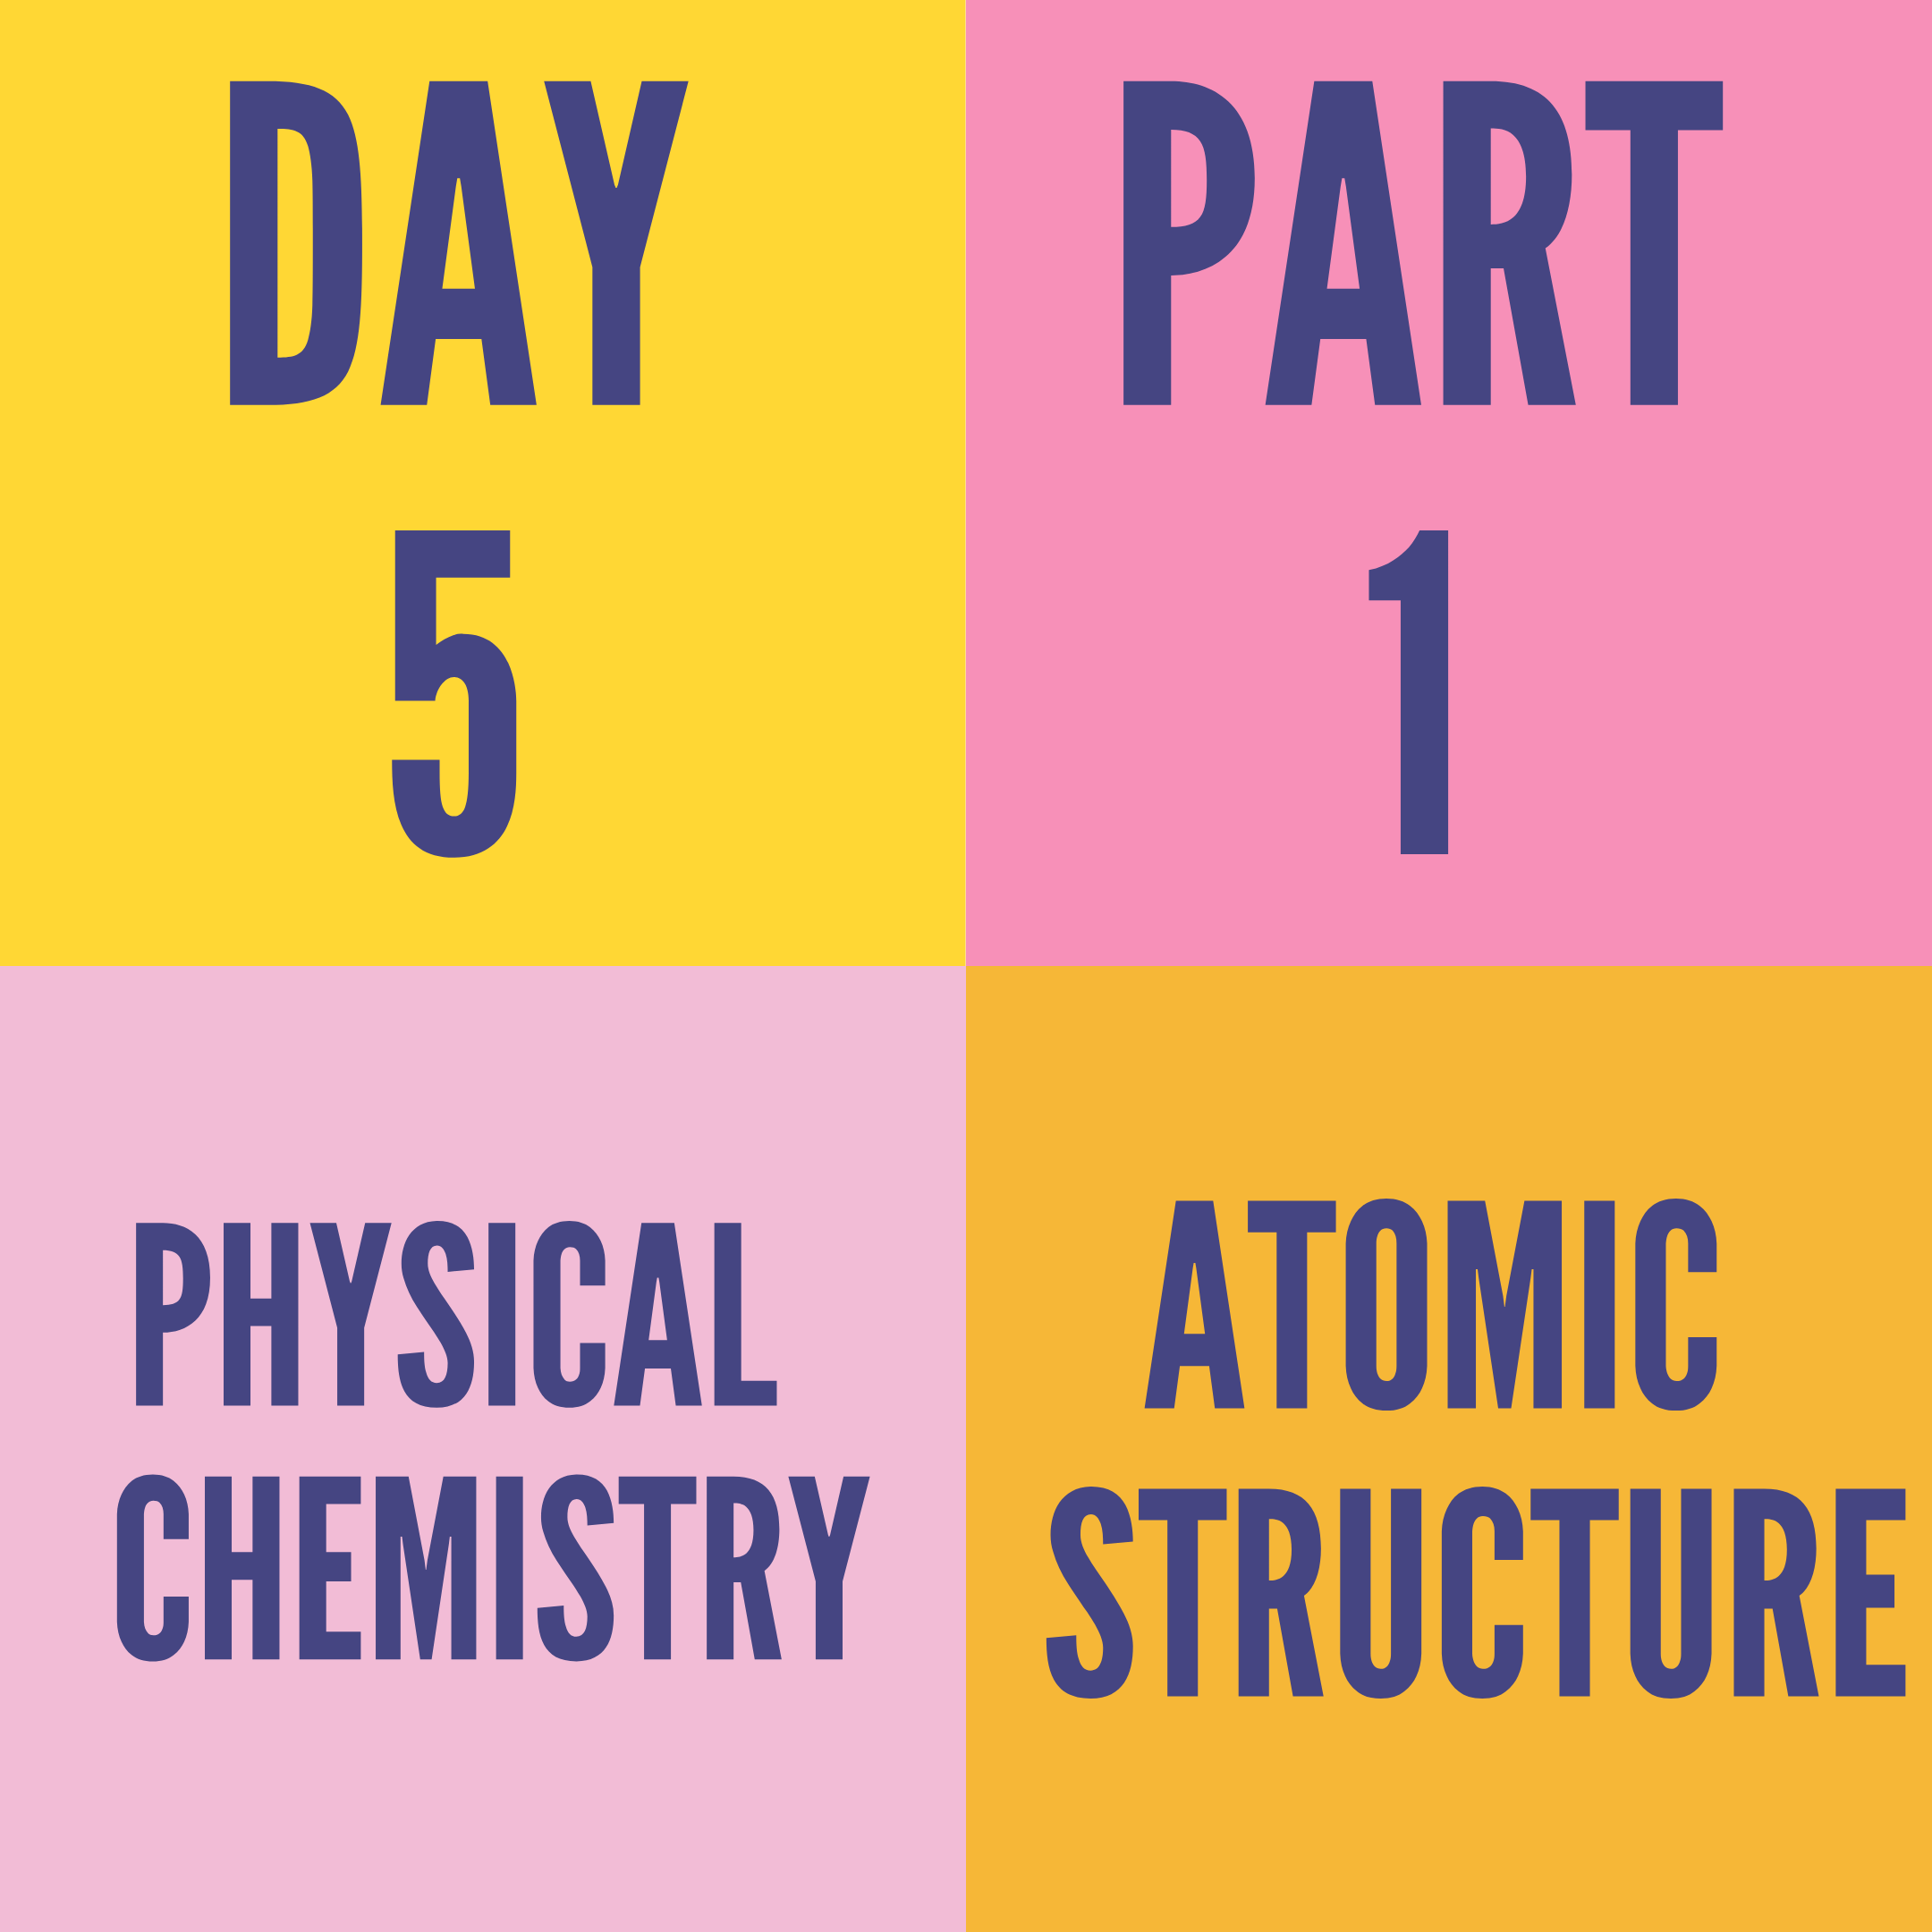 DAY-5 PART-1 ATOMIC STRUCTURE